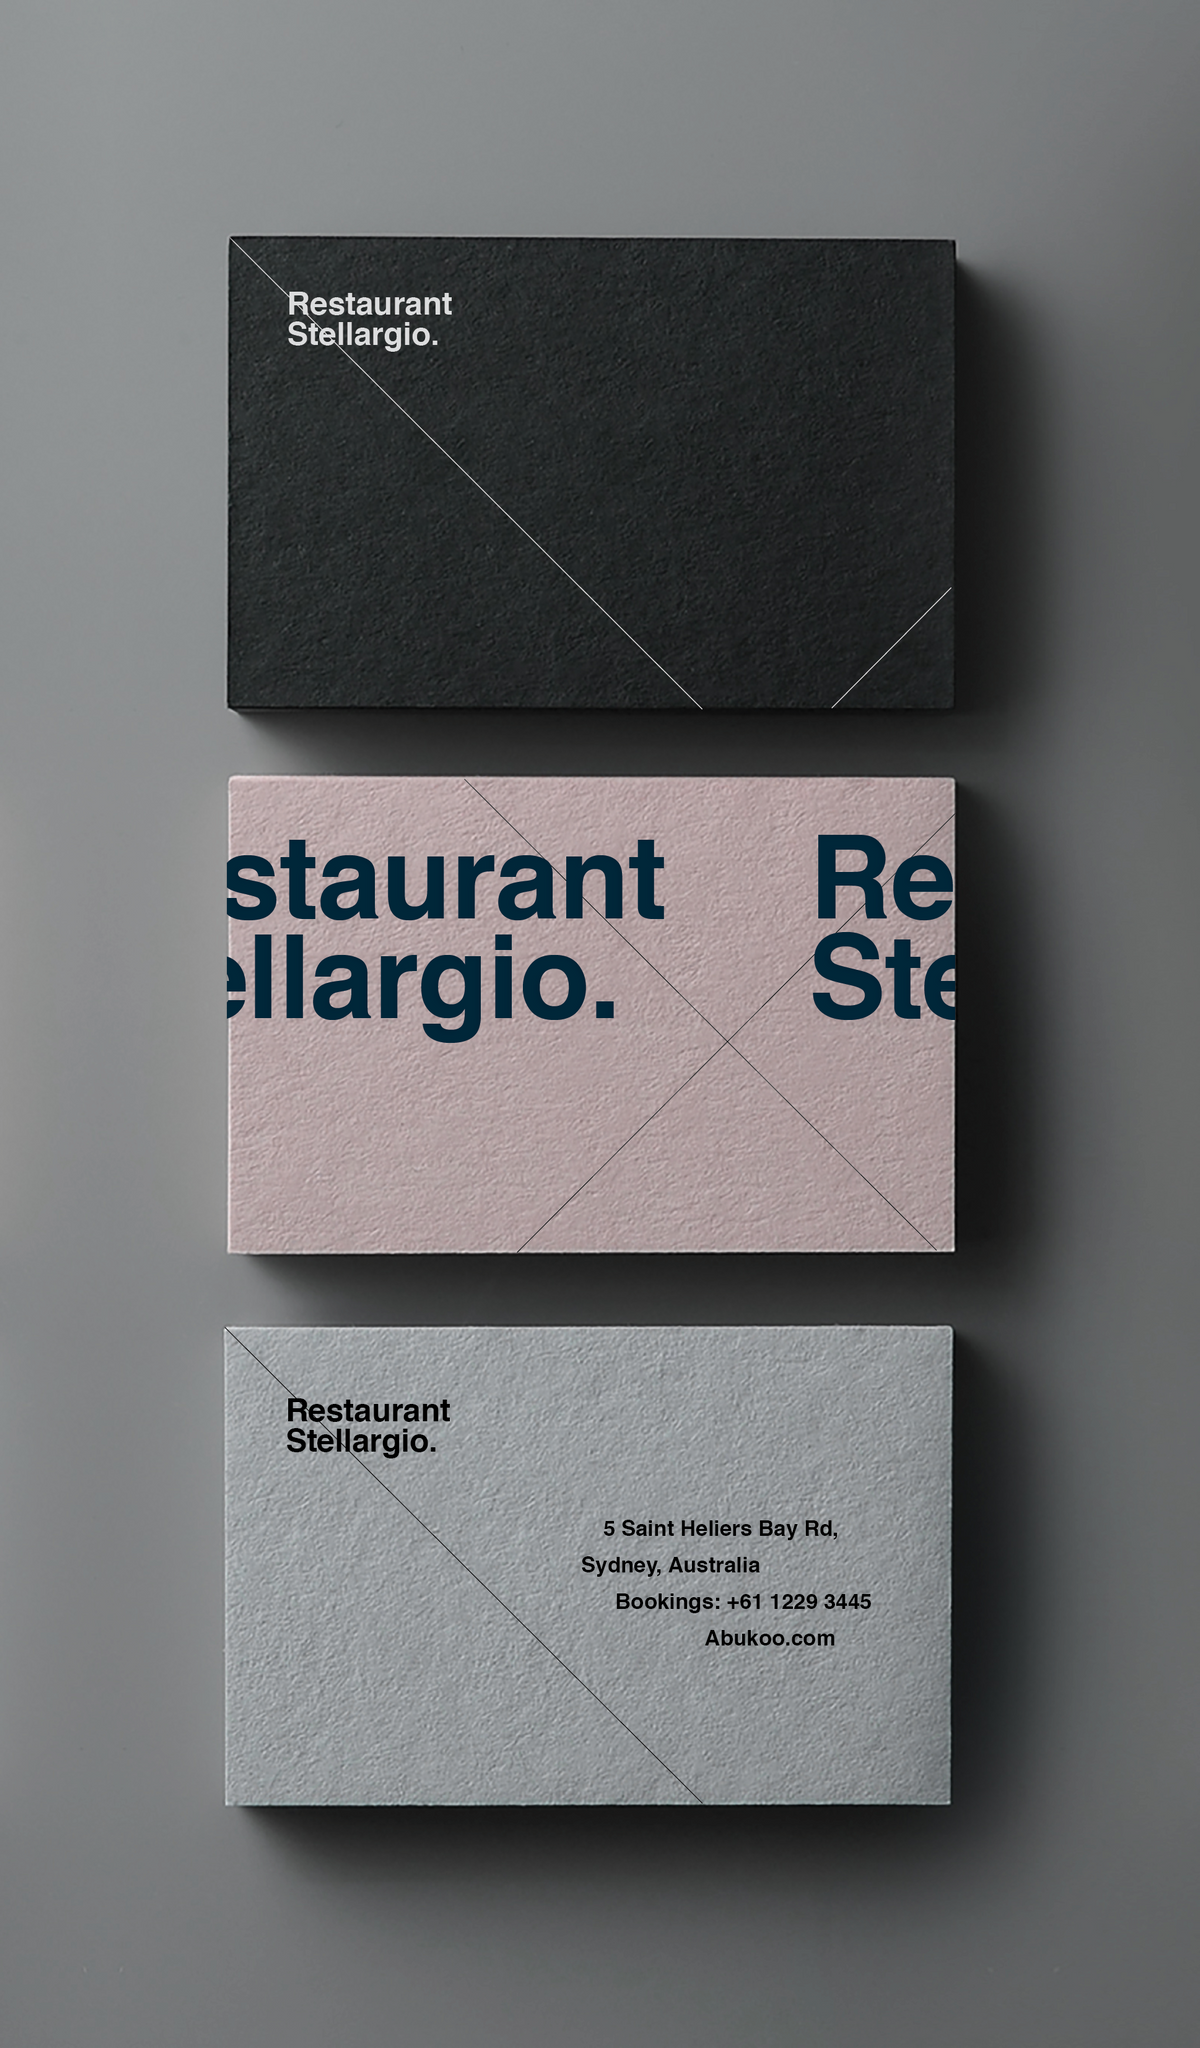 business card design | Restaurant ideas